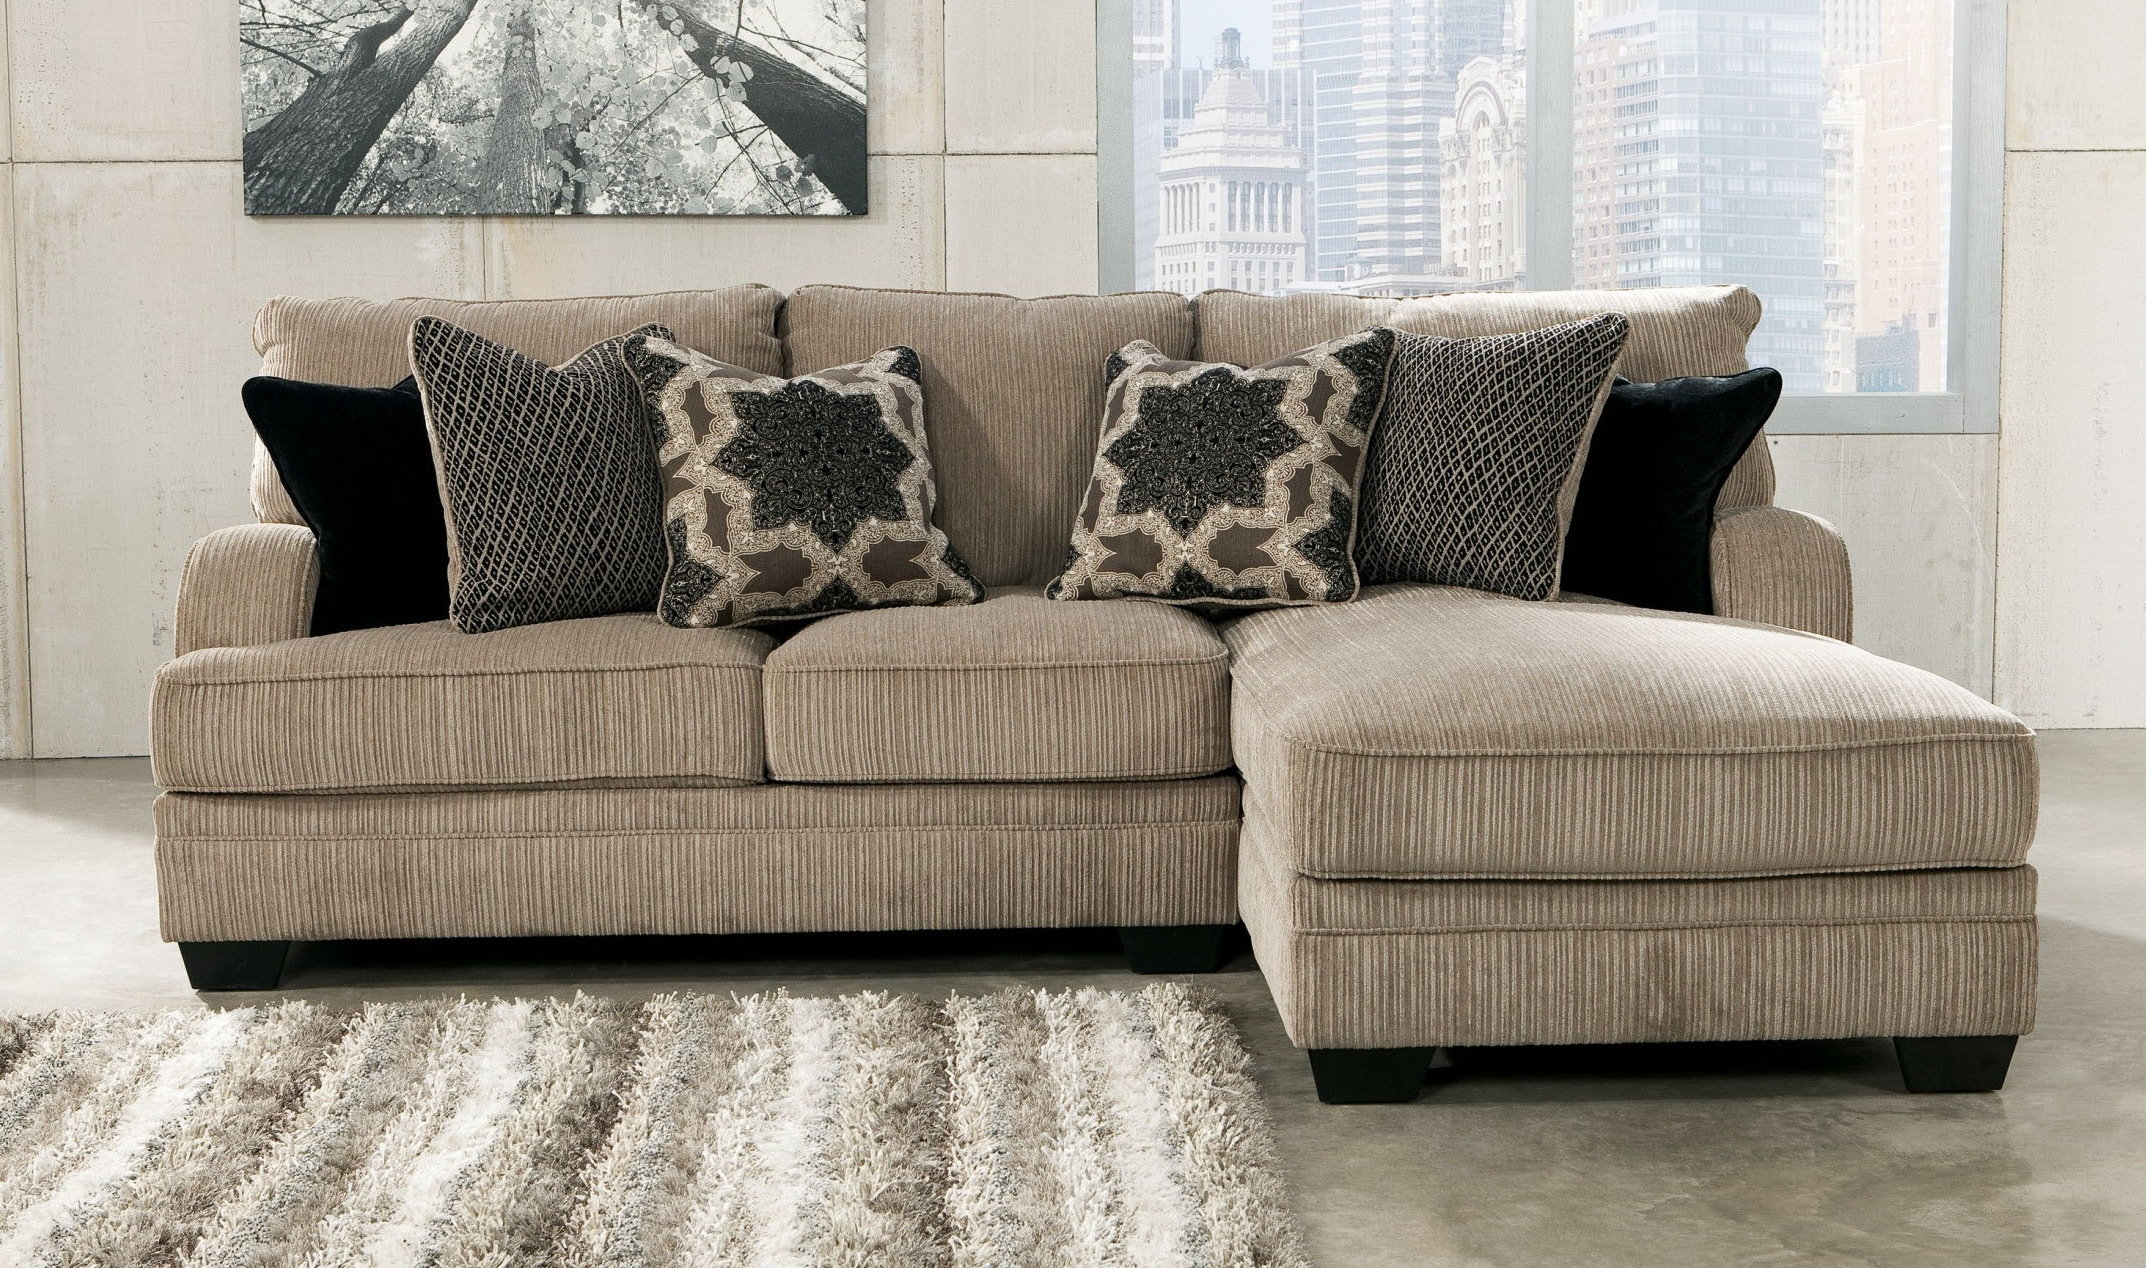 Newest Reclining Sectional With Chaise Sectional Couches Big Lots For Apartment Size Sectionals With Chaise (View 9 of 15)